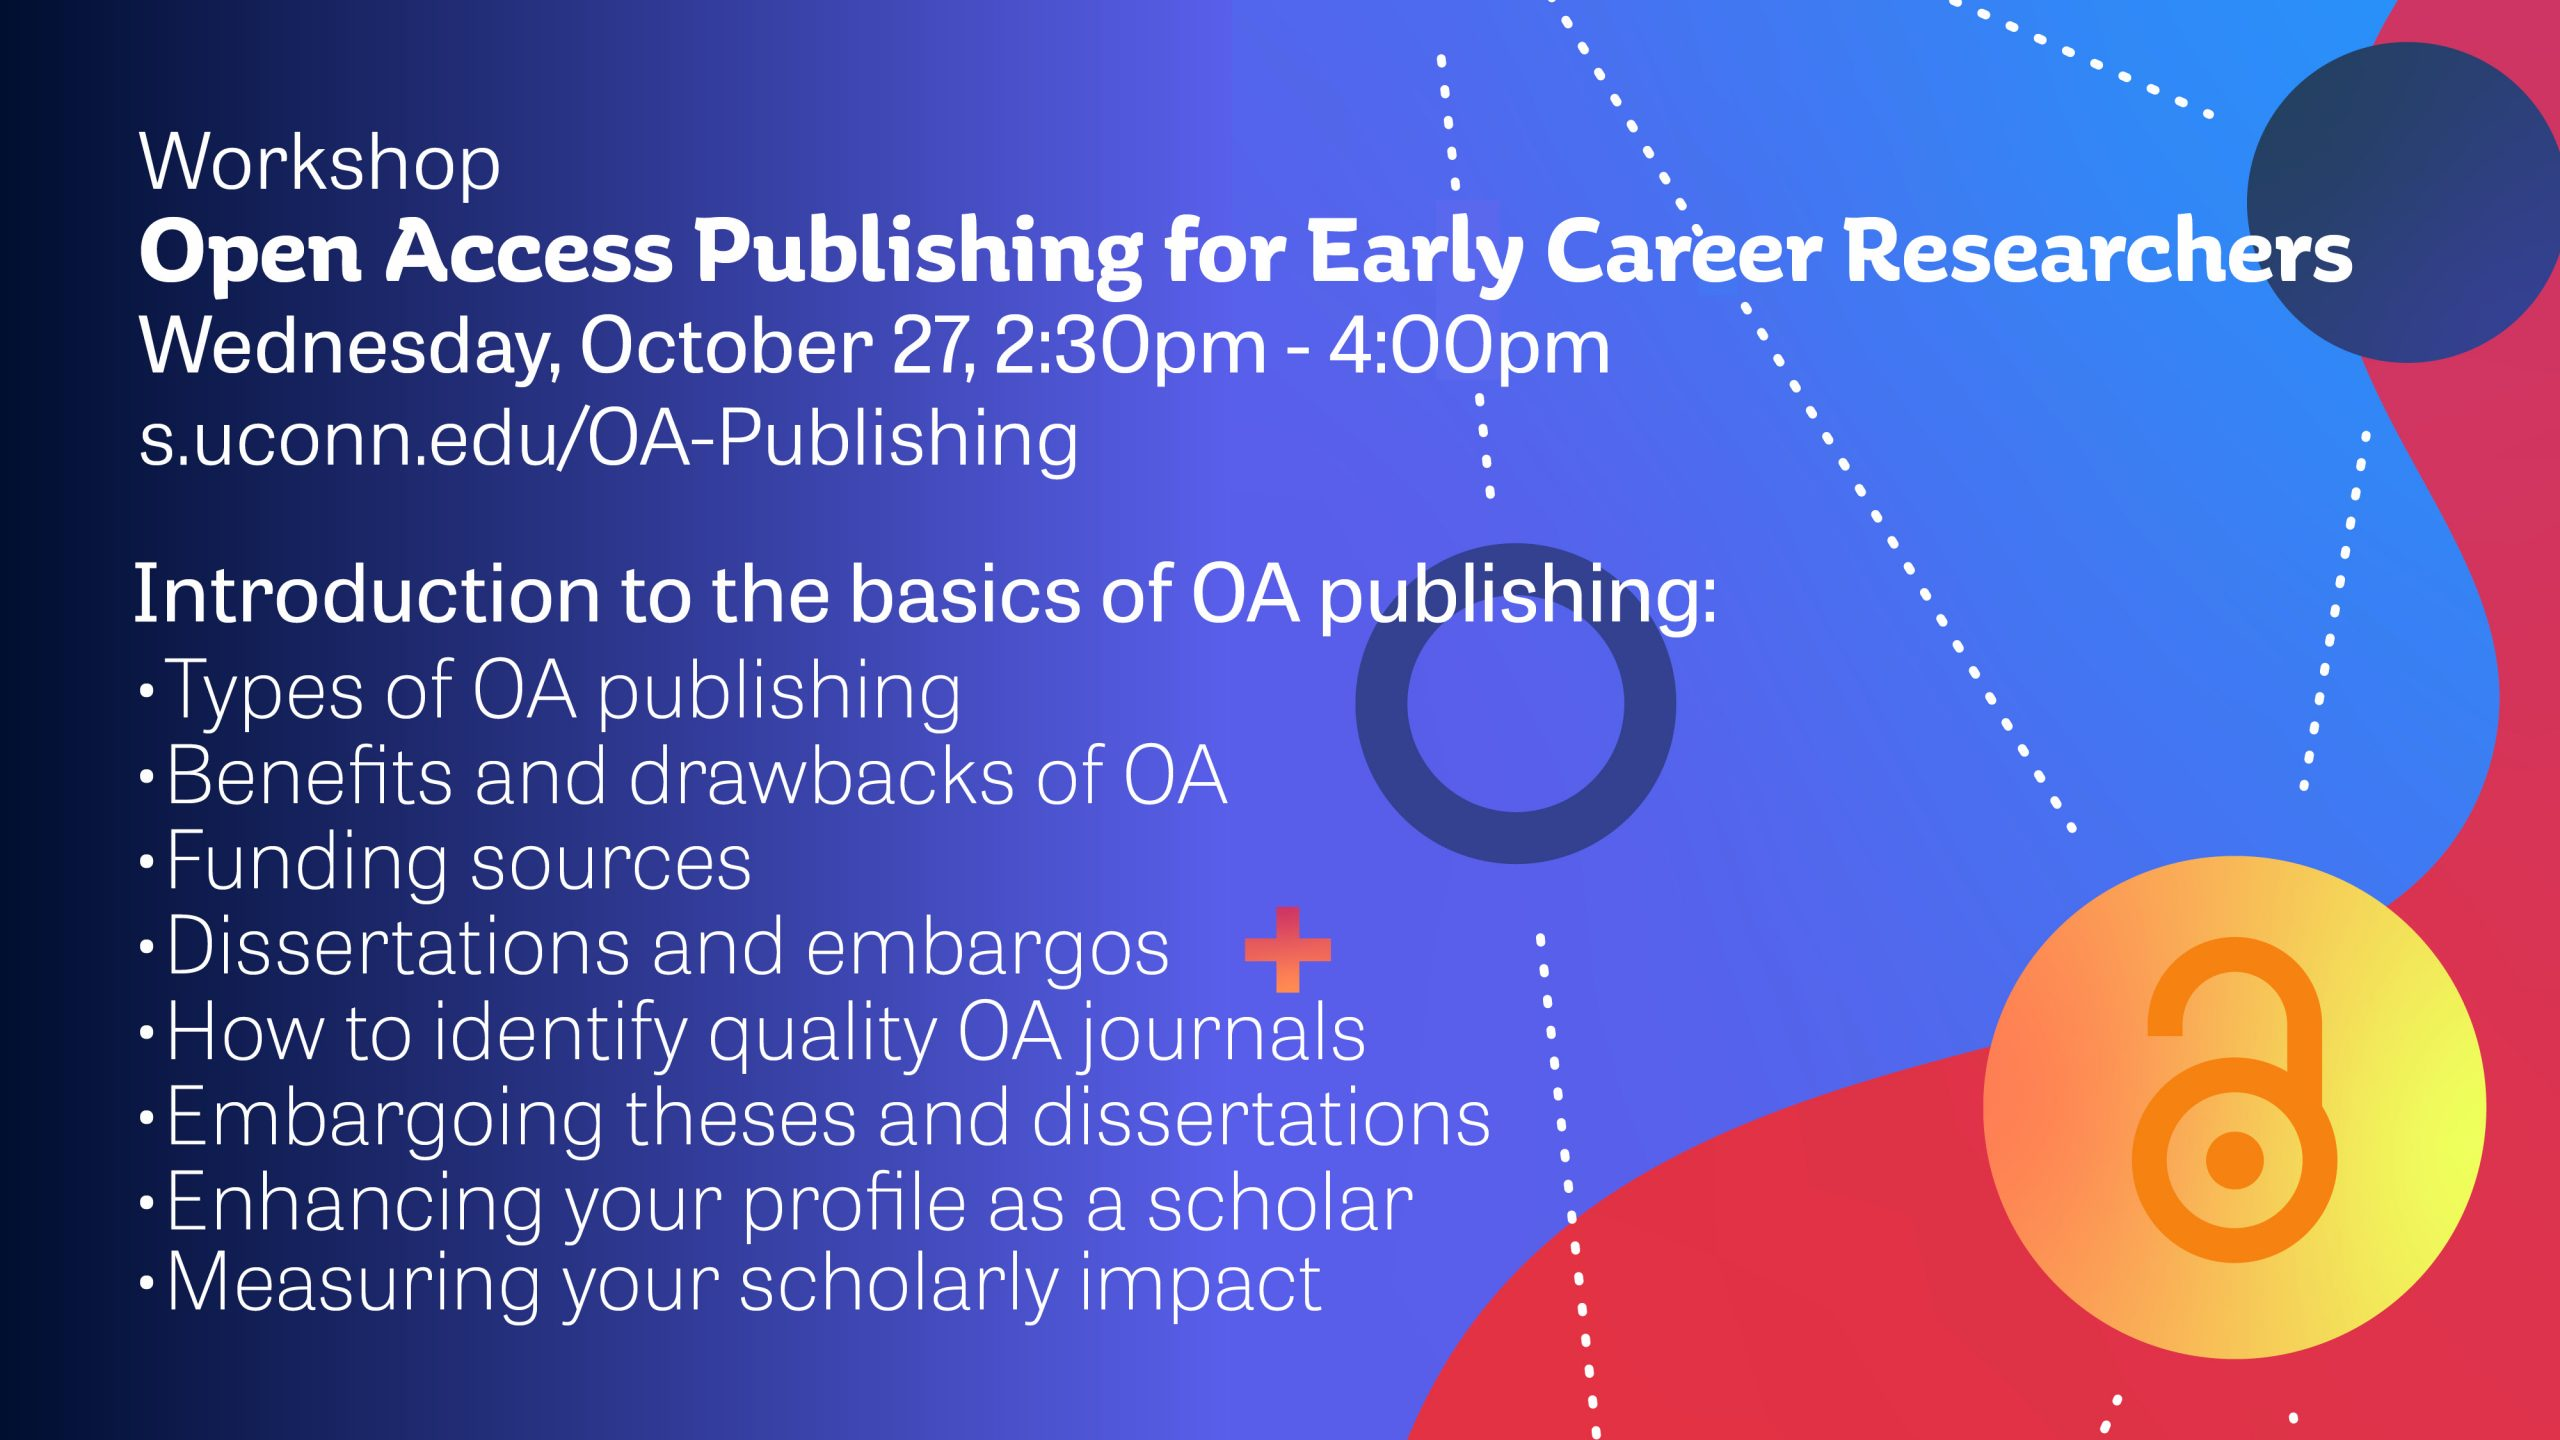 Workshop Open Access Publishing for Early Career Researchers Wednesday, October 27, 2:30pm - 4:00pm - Introduction to the basics of OA publishing: •Types of OA publishing •Benefits and drawbacks of OA •Funding sources •Dissertations and embargos •How to identify quality OA journals •Embargoing theses and dissertations •Enhancing your profile as a scholar •Measuring your scholarly impact s.uconn.edu/OA-Publishing